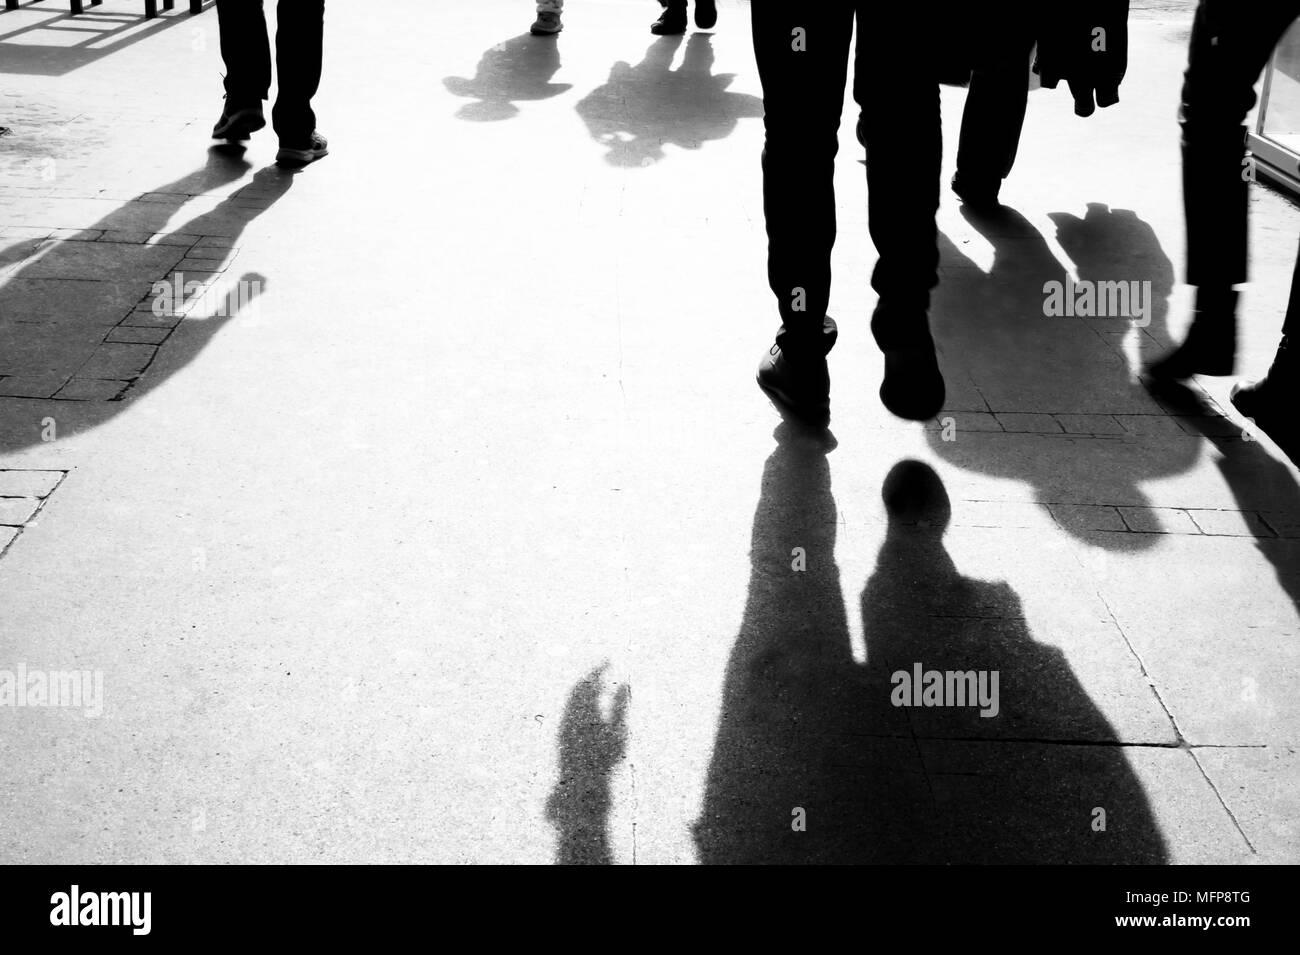 Silhouettes and shadows of people walking on the city sidewalk in early morning black and white - Stock Image